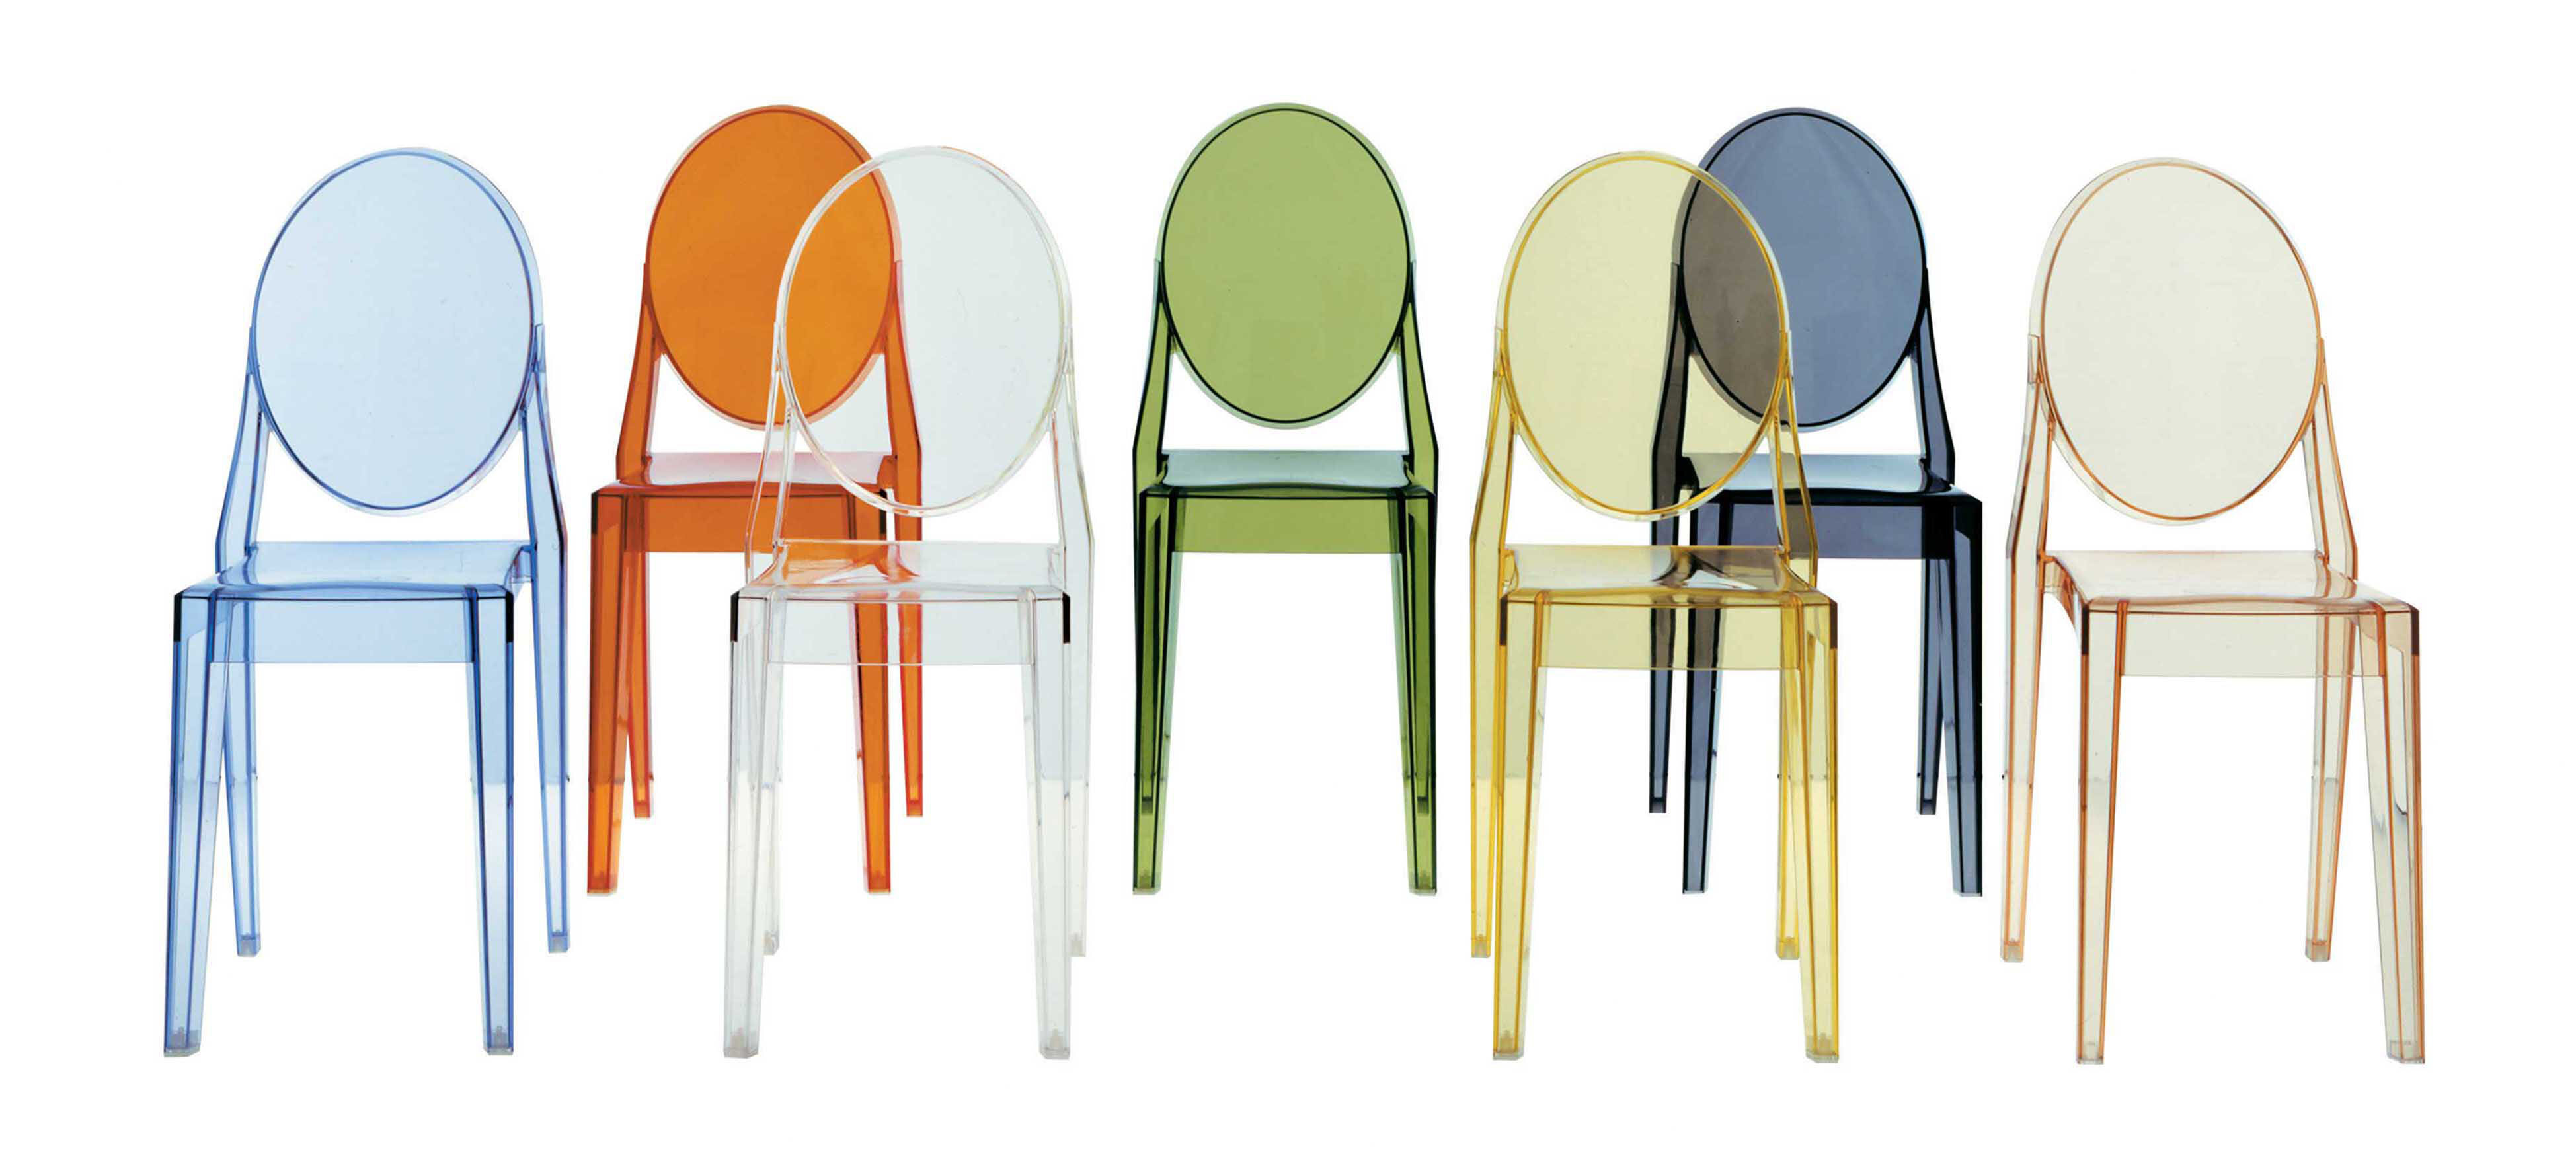 louis starck chair hospicehelpnow sourcetherealreal com kartell from source therealreal ghost ktl of furniture